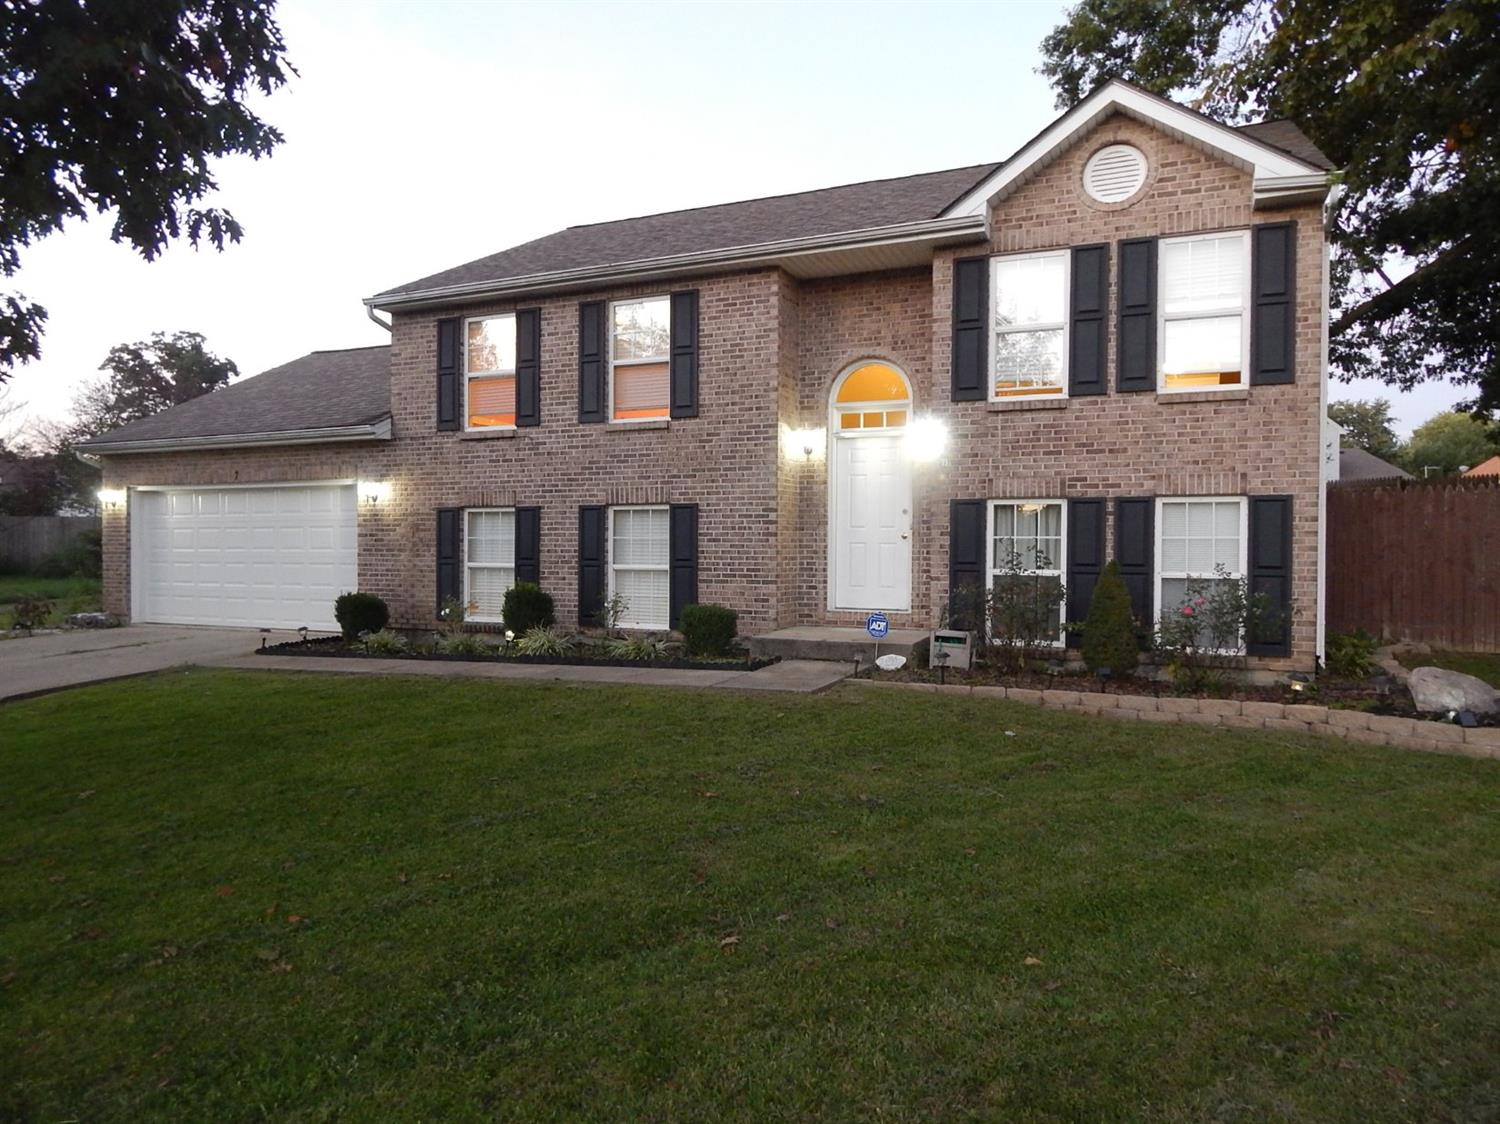 Property for sale at 7 Pintail Court, Amelia,  OH 45102